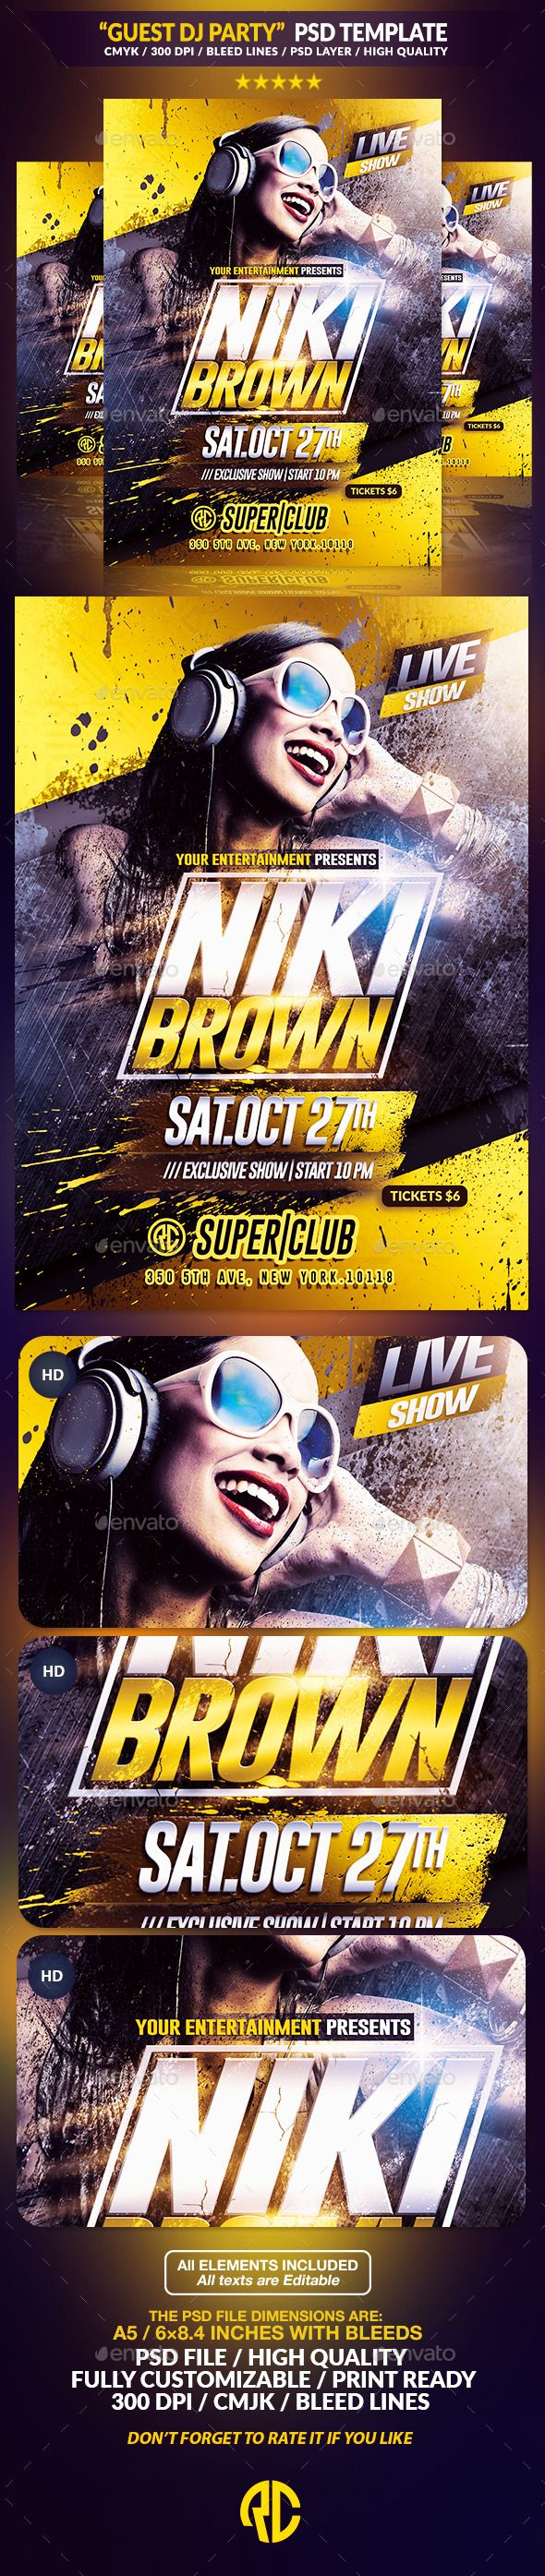 Live Dj Party | Psd Flyer Template PSD #design Download: http://graphicriver.net/item/live-dj-party-psd-flyer-template/12967280?ref=ksioks